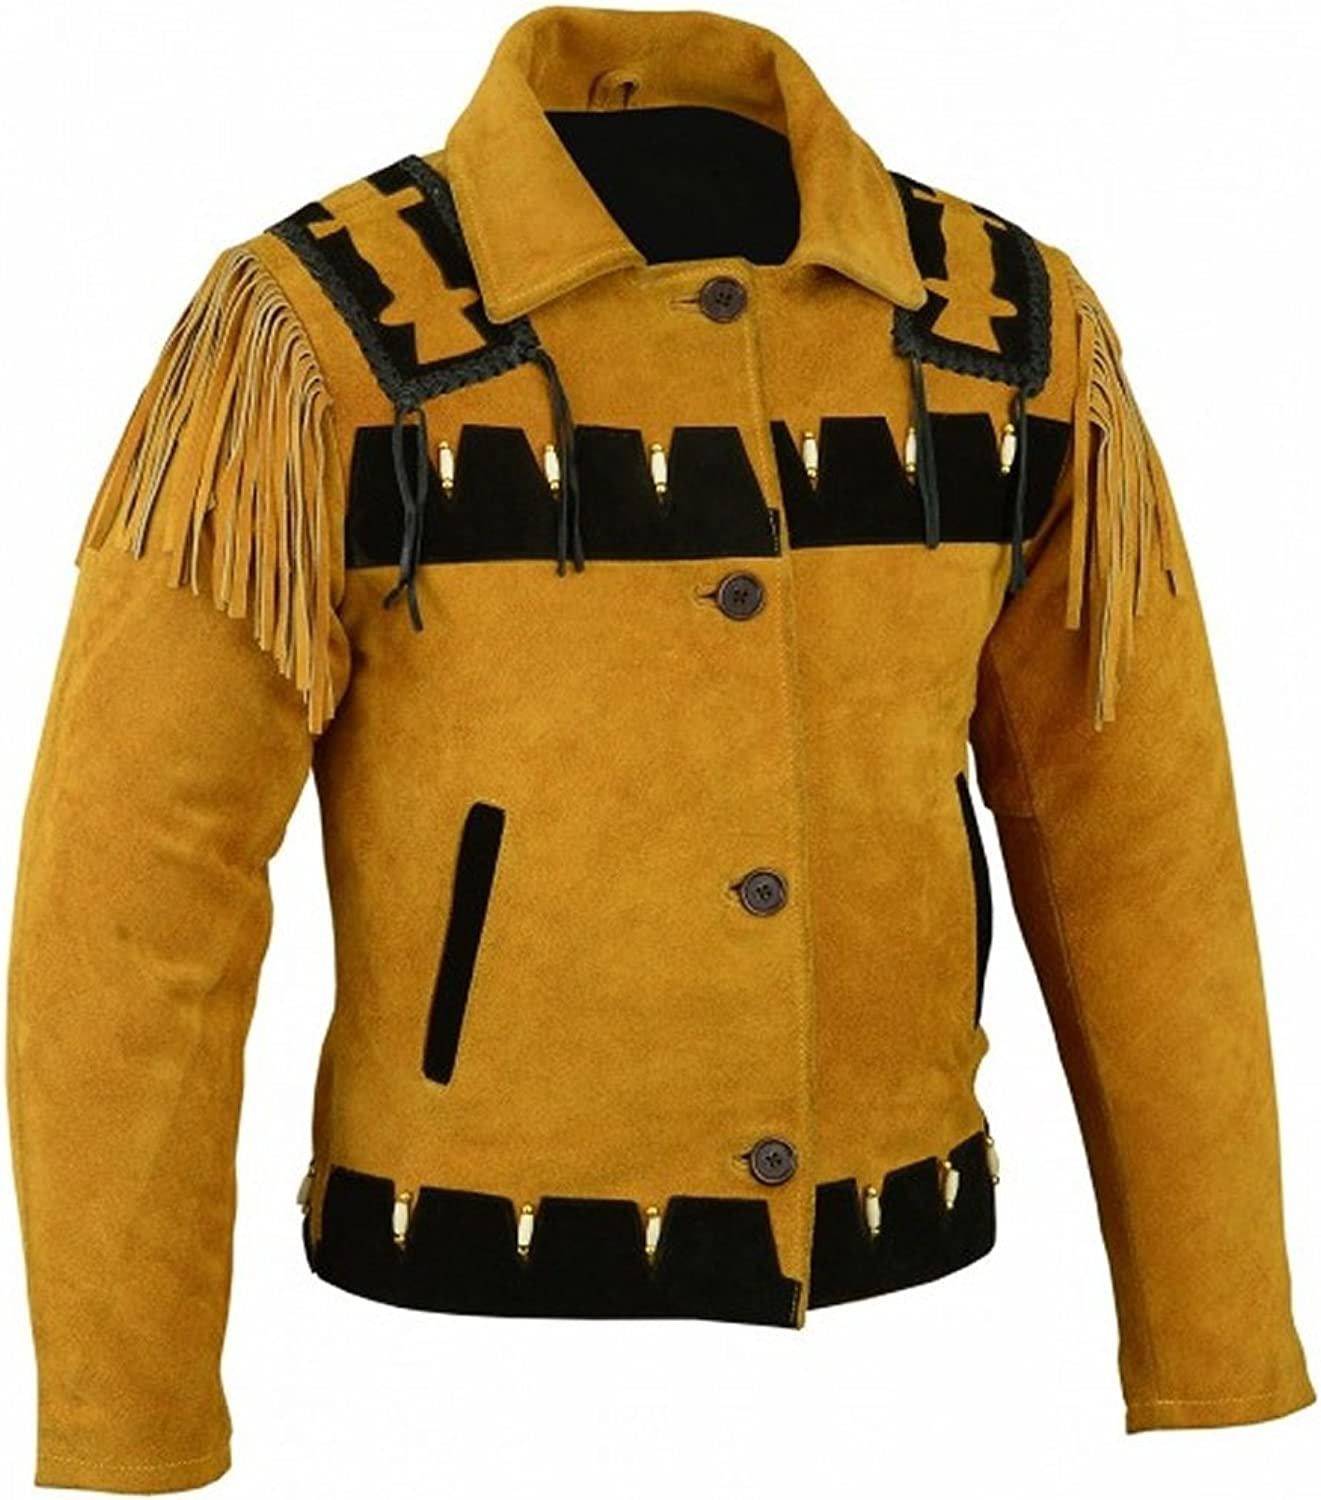 Classyak Women's Carnival Leather Jacket golden Yellow